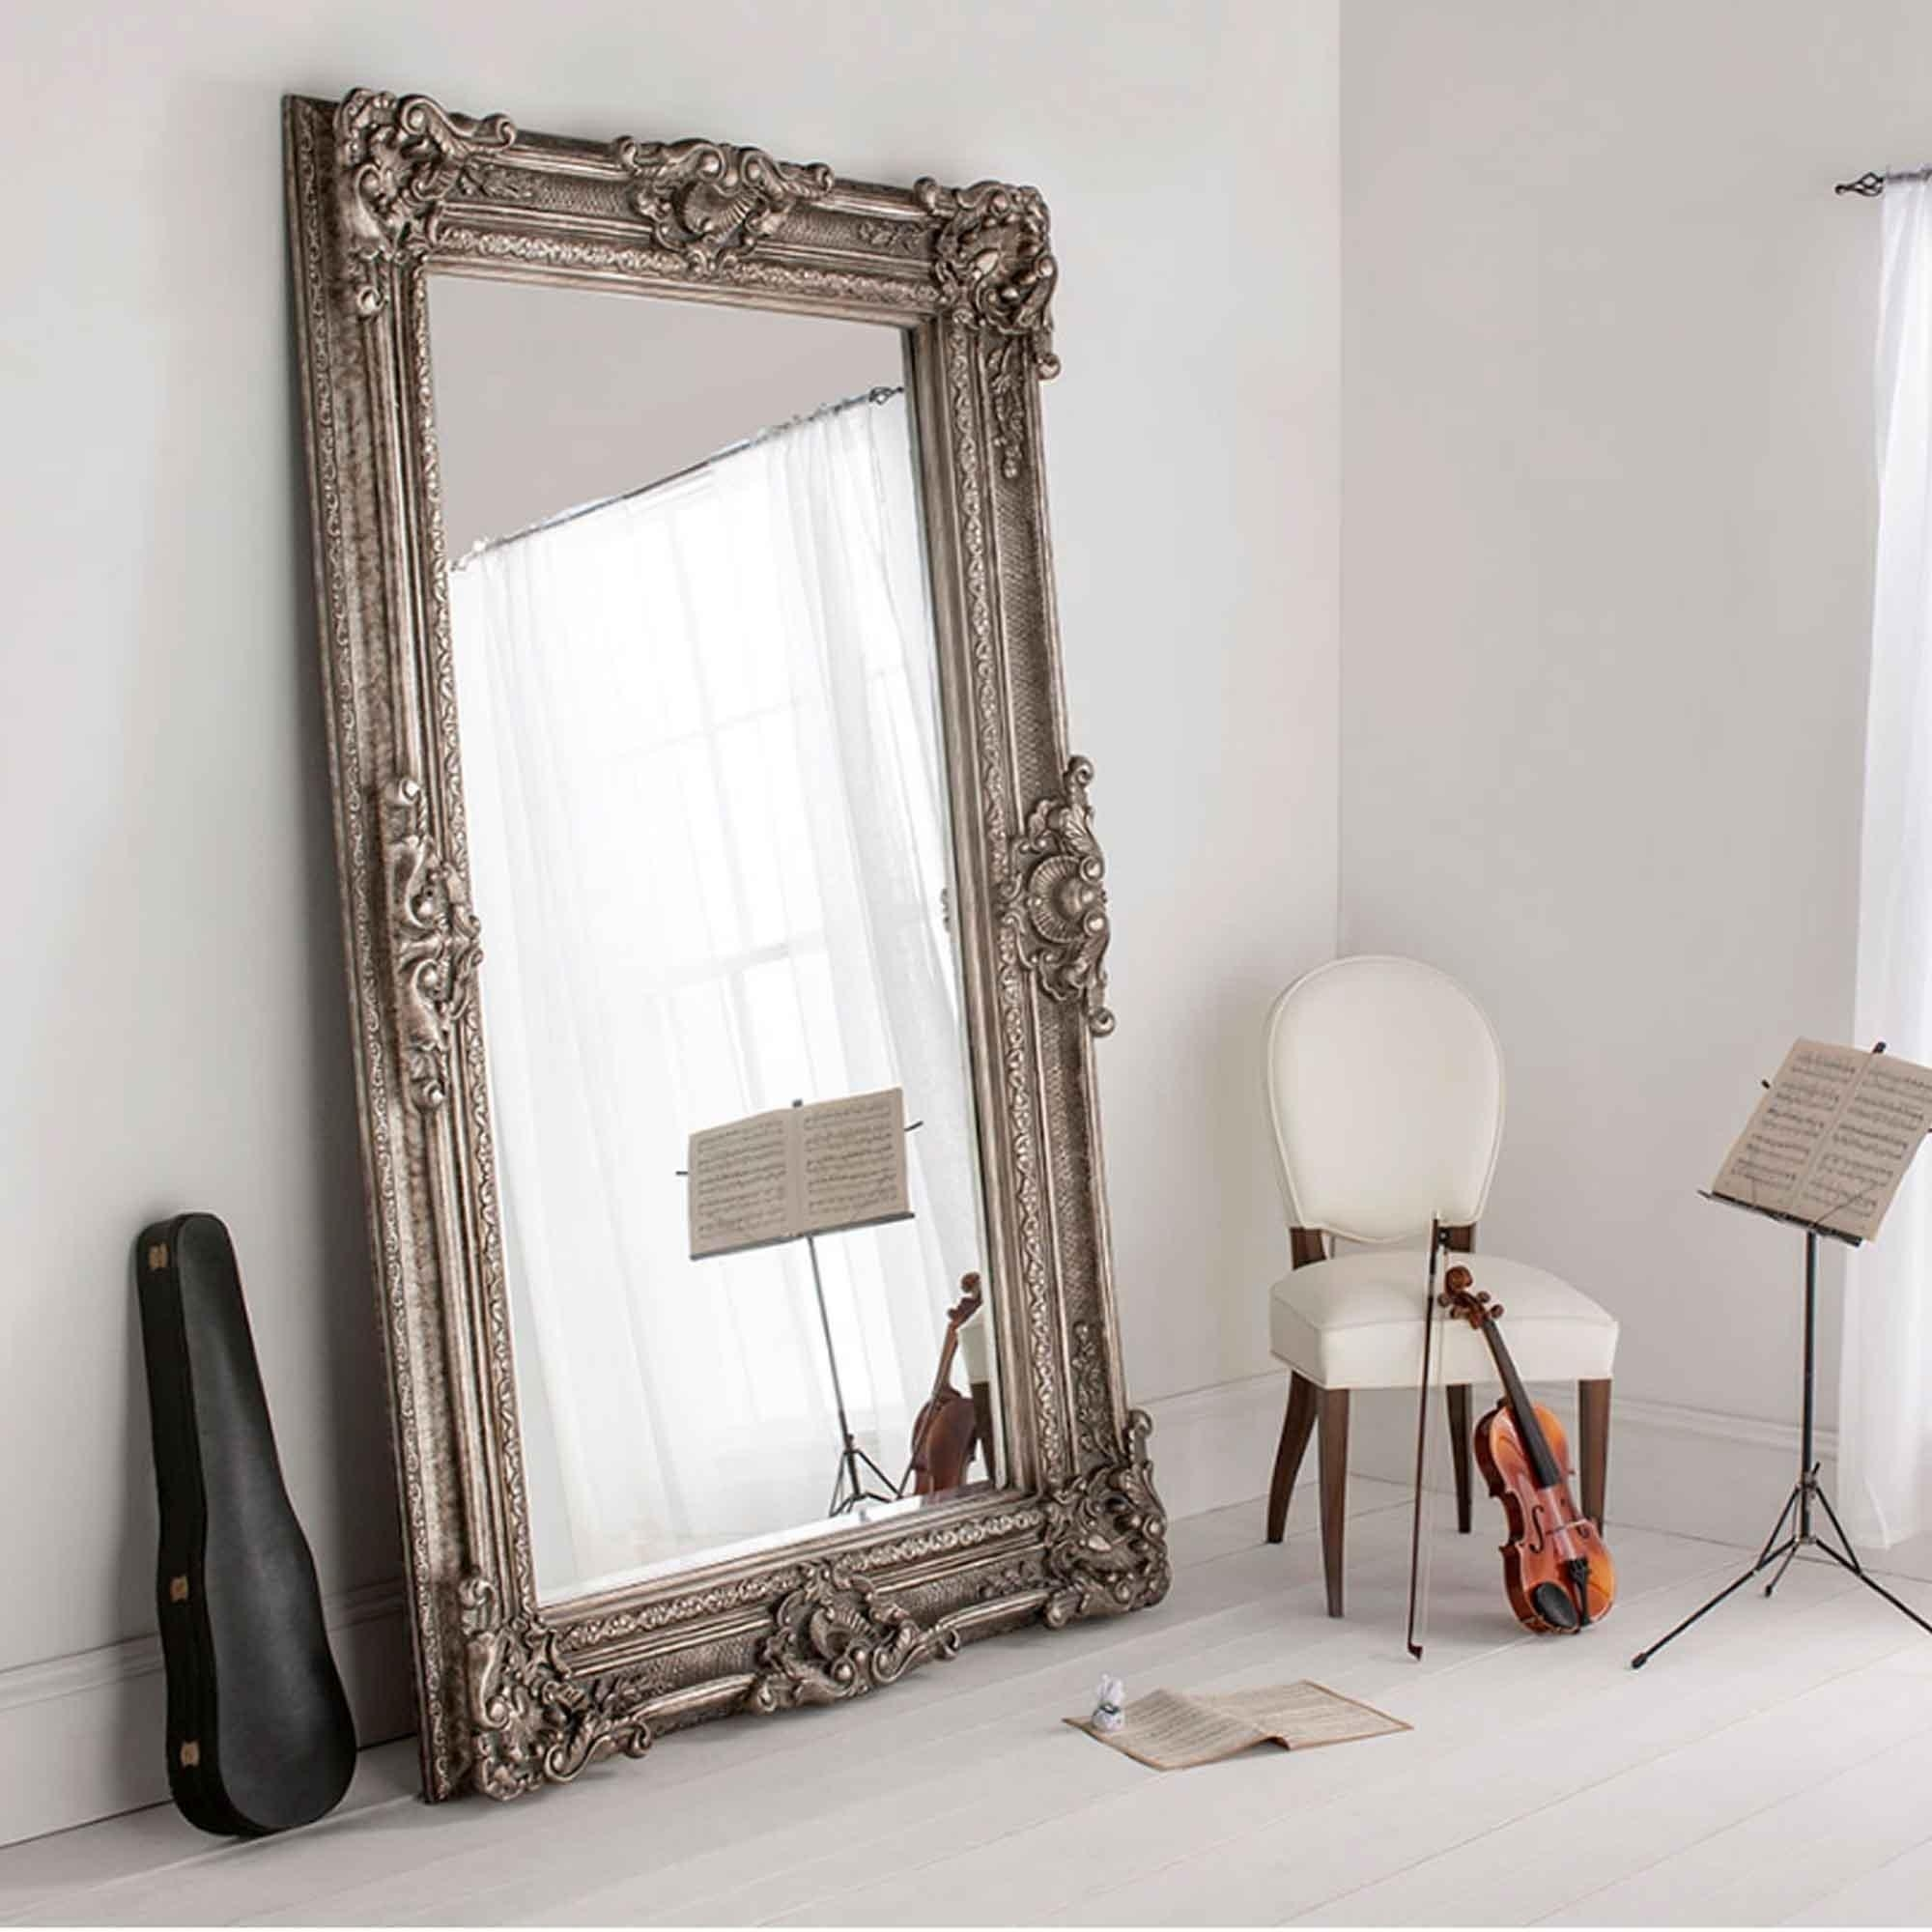 French Floor Standing Mirrors | Extra Large Mirrors | Floor Mirrors Intended For Cream Floor Standing Mirror (View 19 of 20)